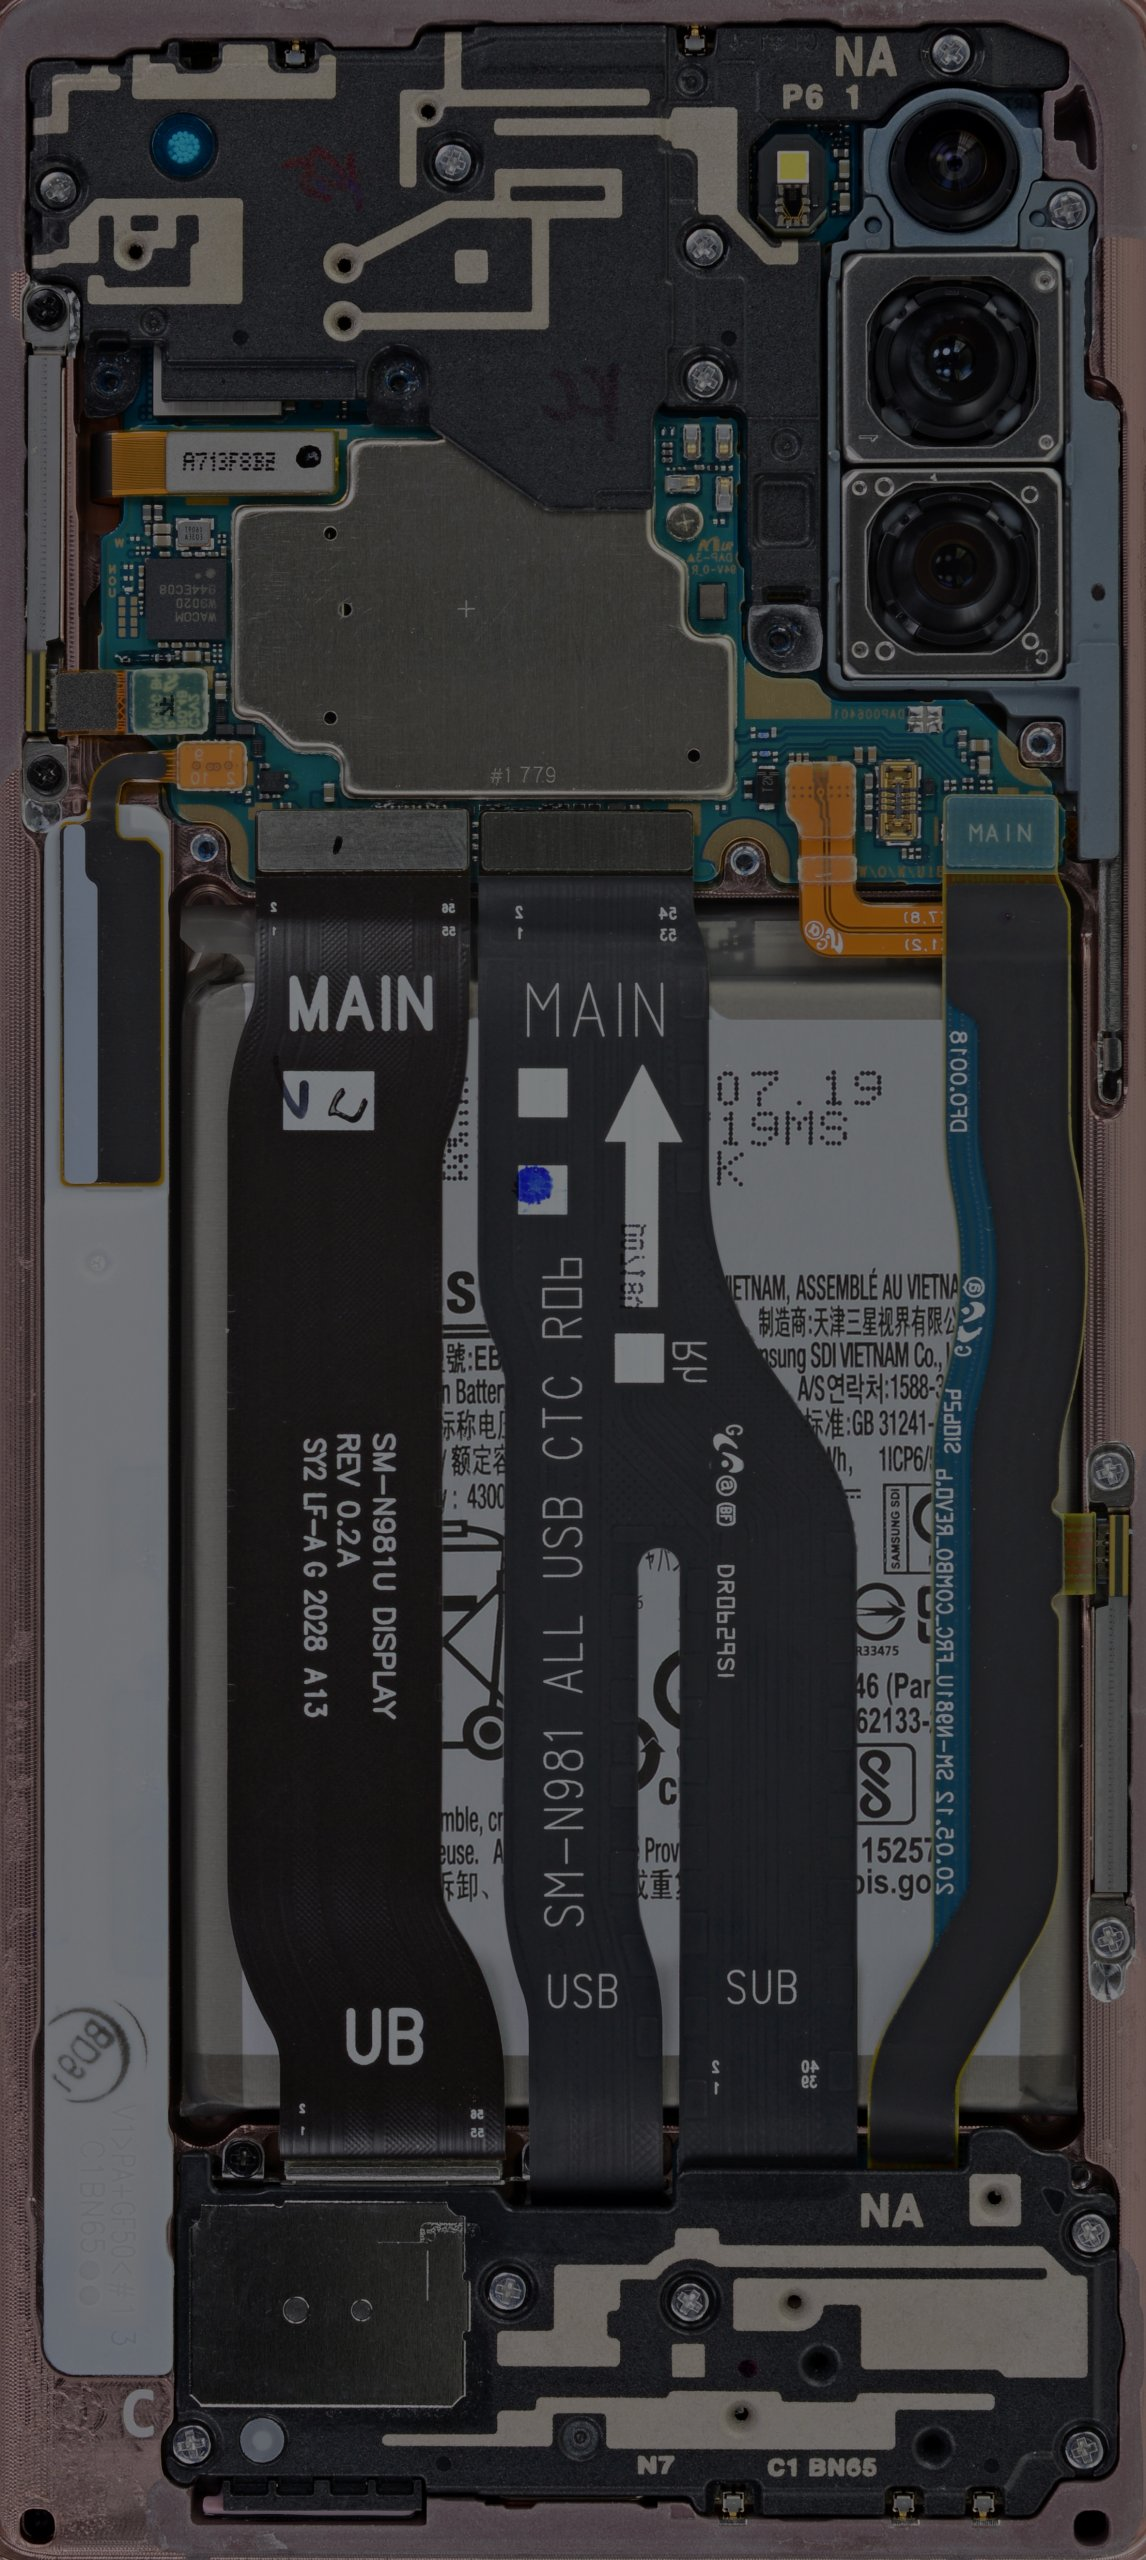 Galaxy Note 20 internals